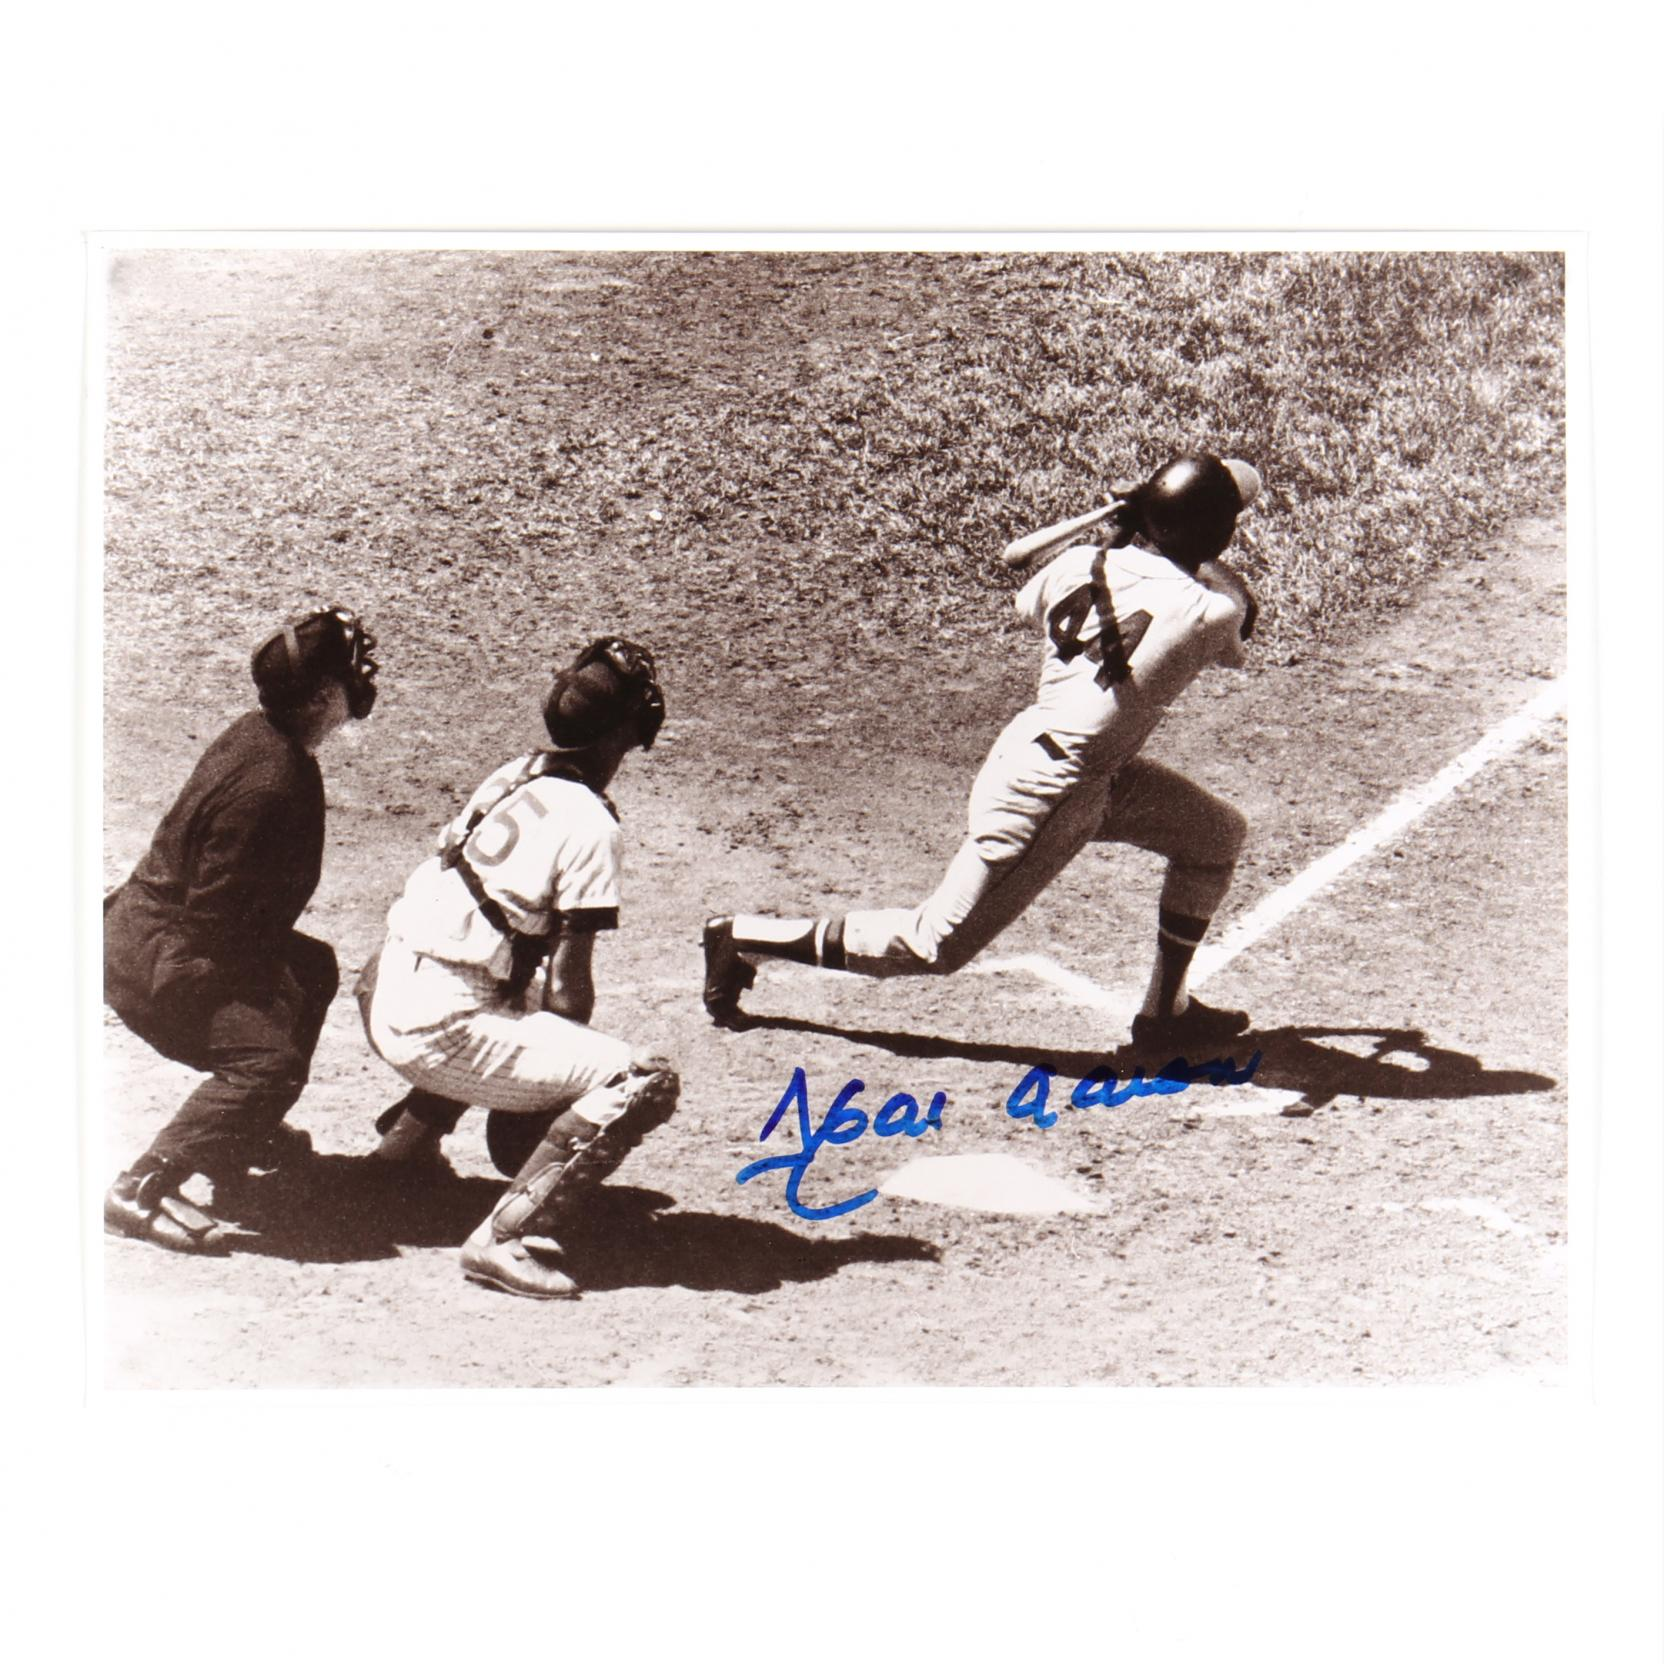 hank-aaron-signed-photograph-with-coa